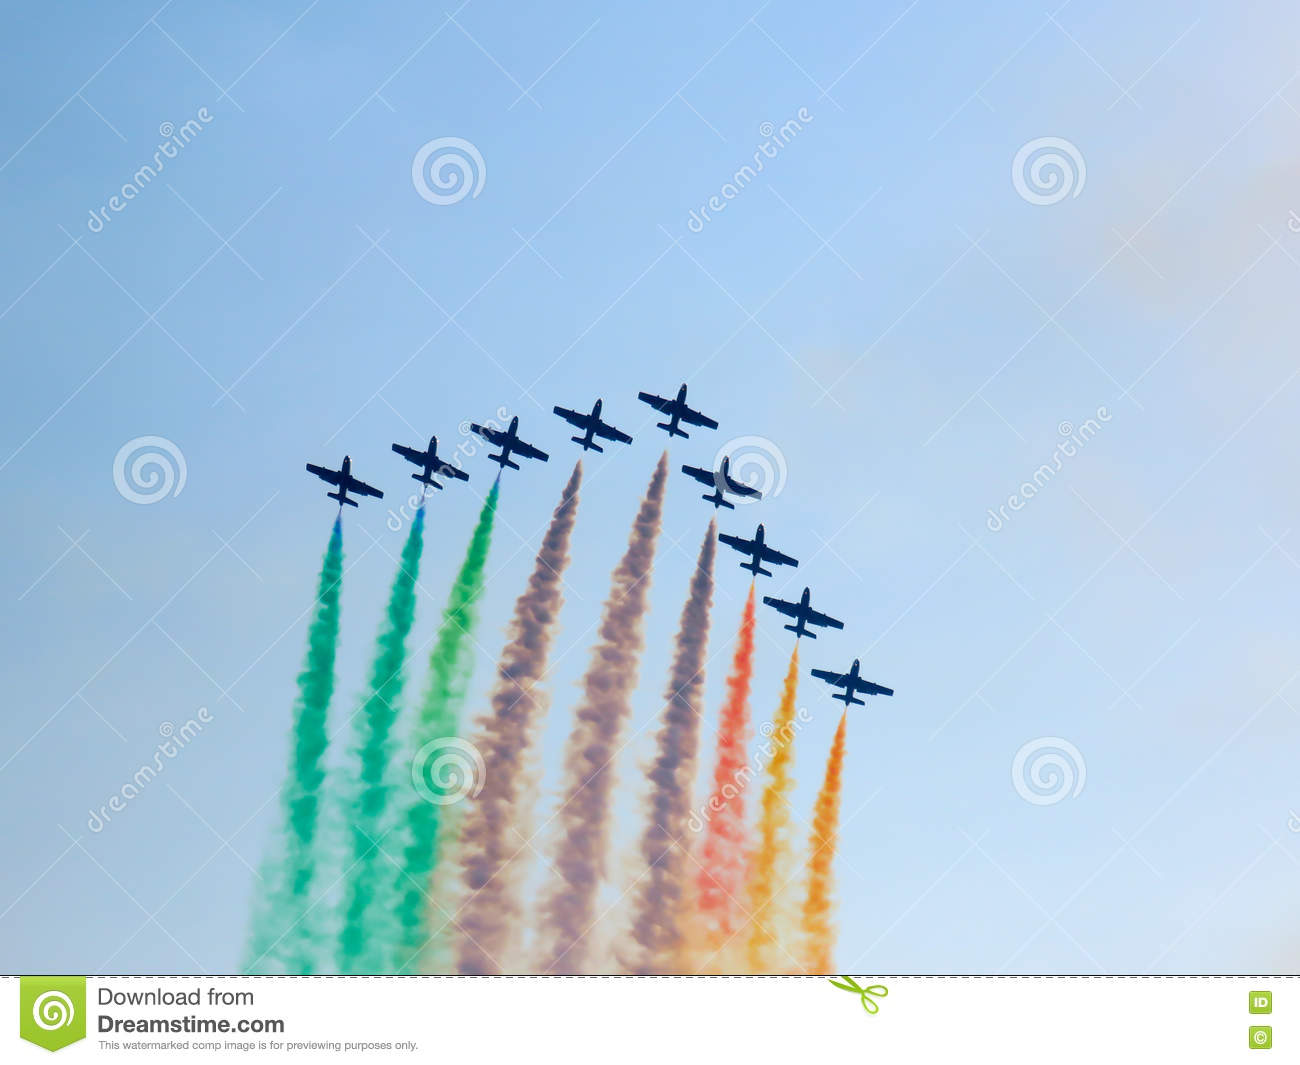 Salon de l aéronautique tricolore de flèches Tirrenia, Pise, Italie, le 11 septembre, 2